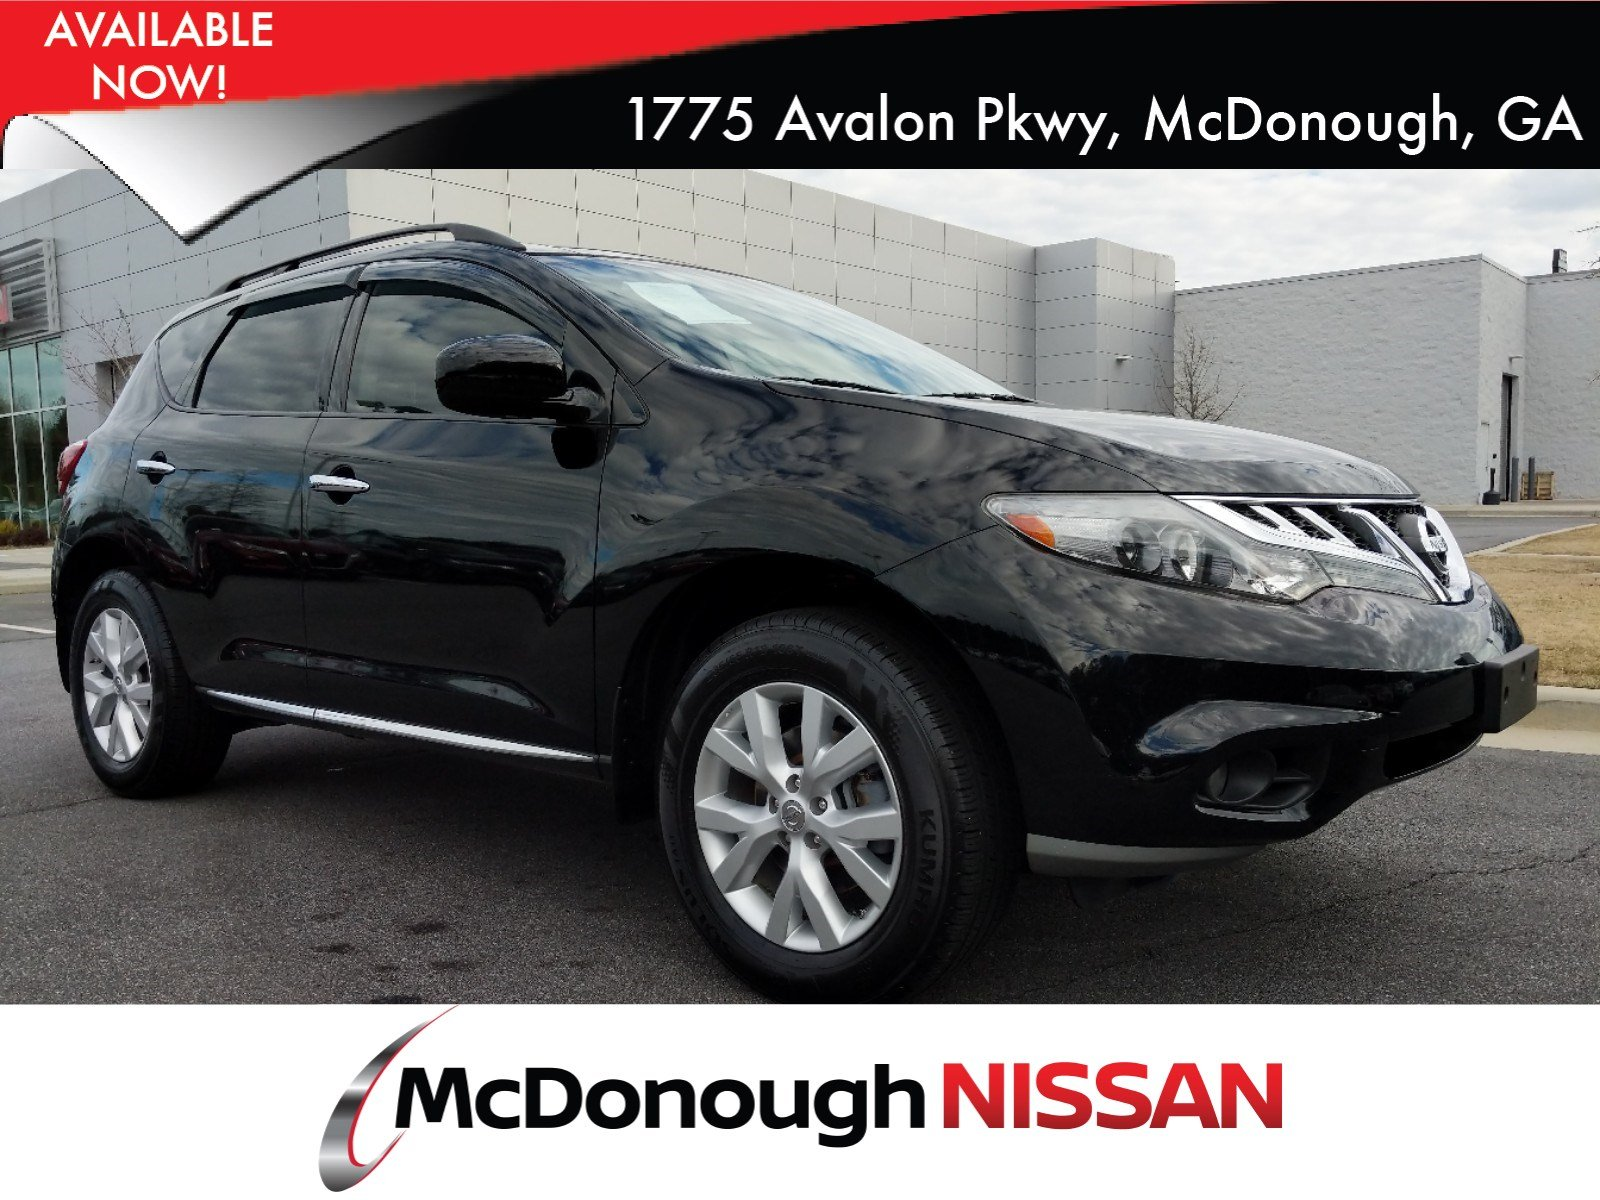 pre-owned 2014 nissan murano sl 4d sport utility for sale #c807544a